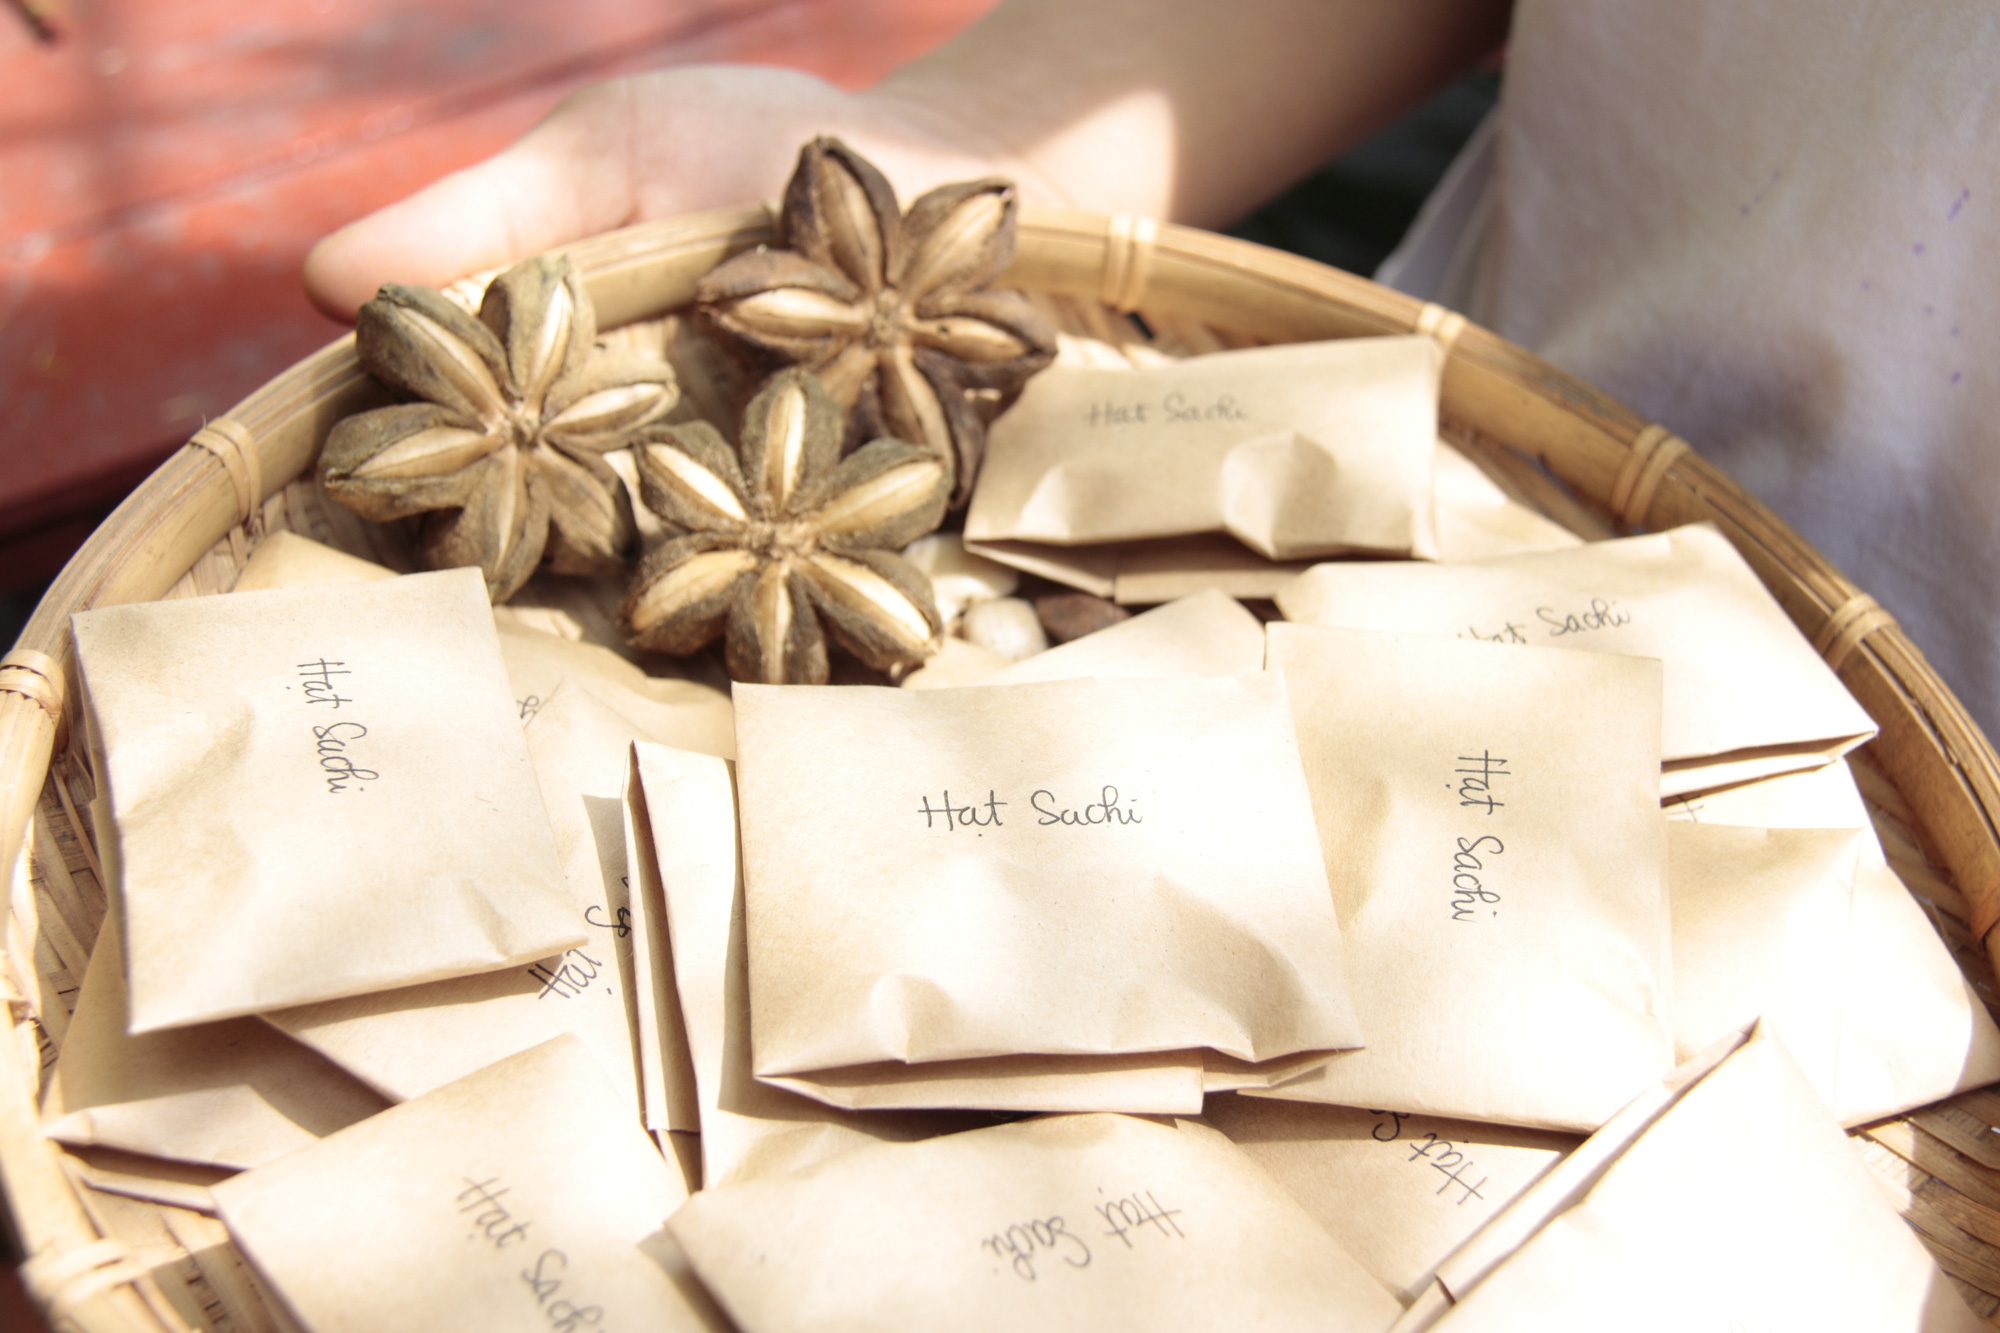 Packets of heirloom seeds being prepared for giveaway at Mzung Space in District 4, Ho Chi Minh City in a provided photo.